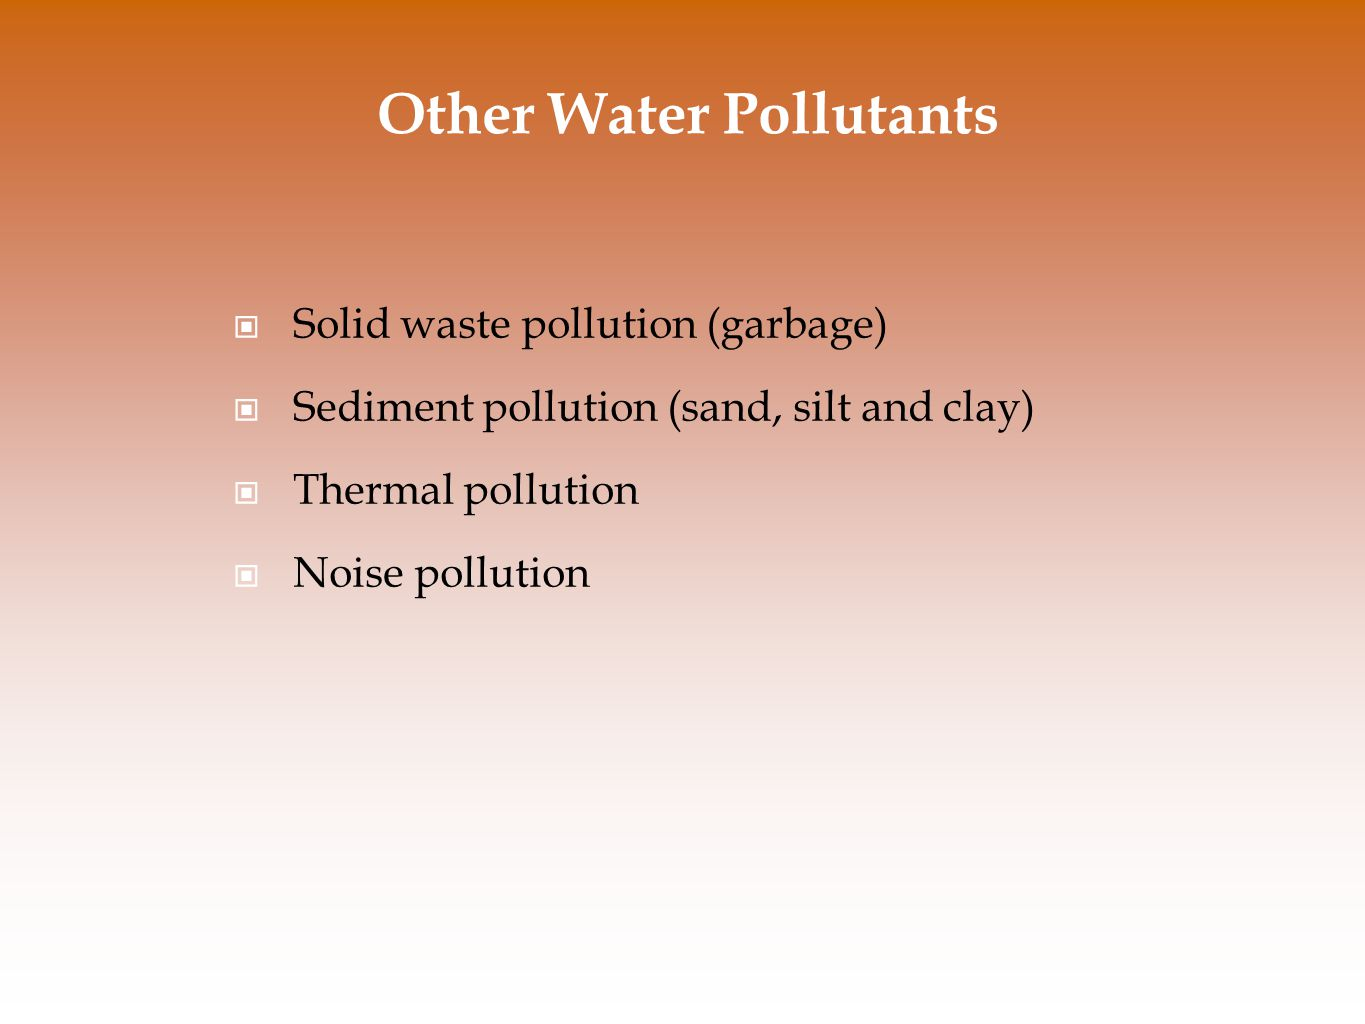 Other Water Pollutants